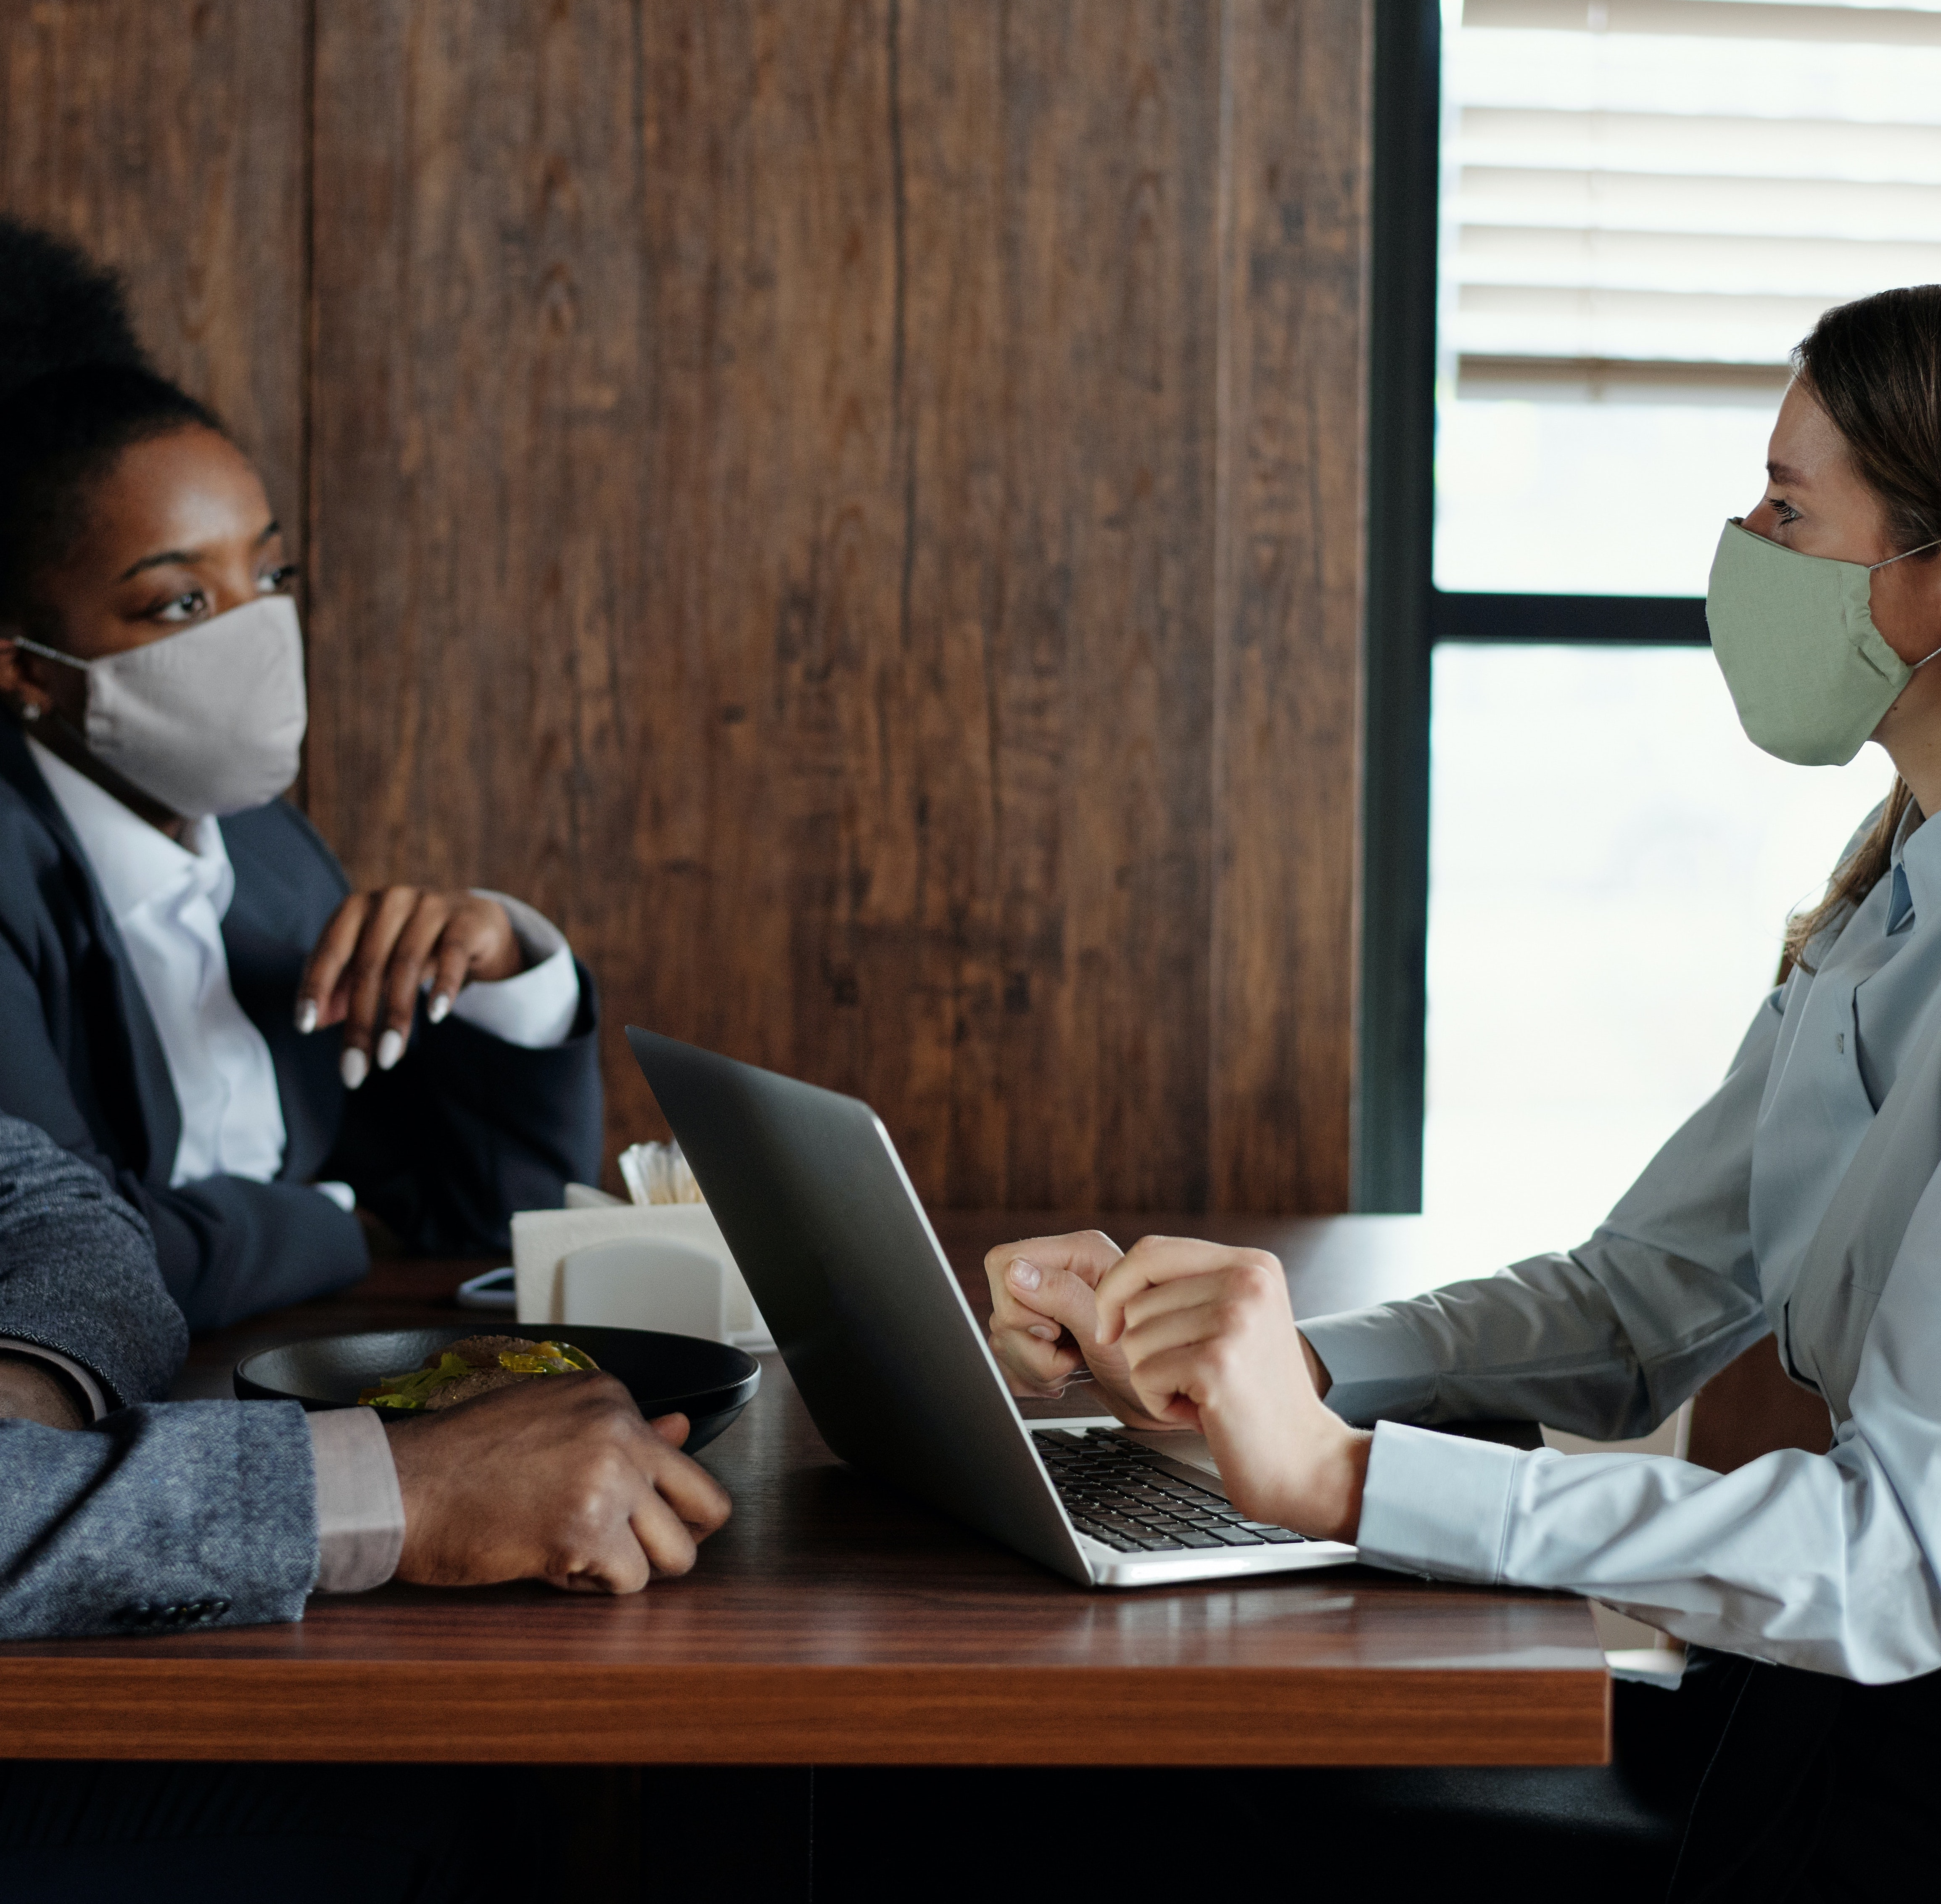 Meeting with 2 people in masks